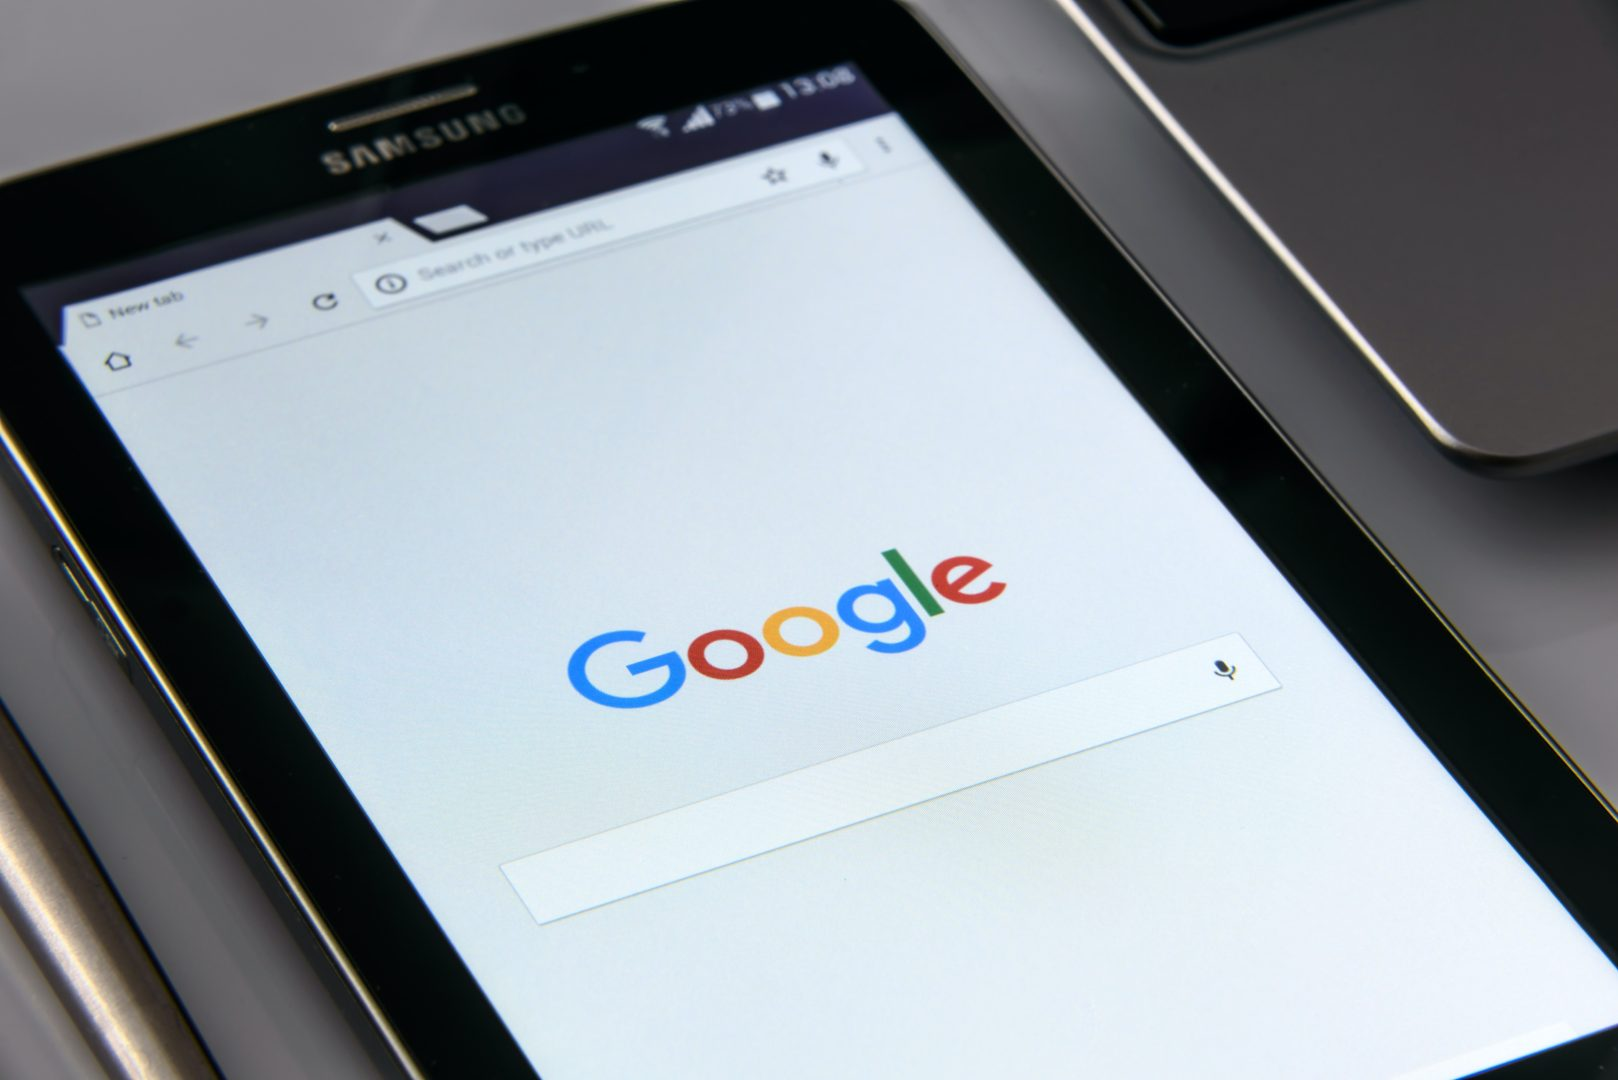 Google Pass 2% Digital Services Tax to Advertisers – Isn't That The Best Decision For Everyone?